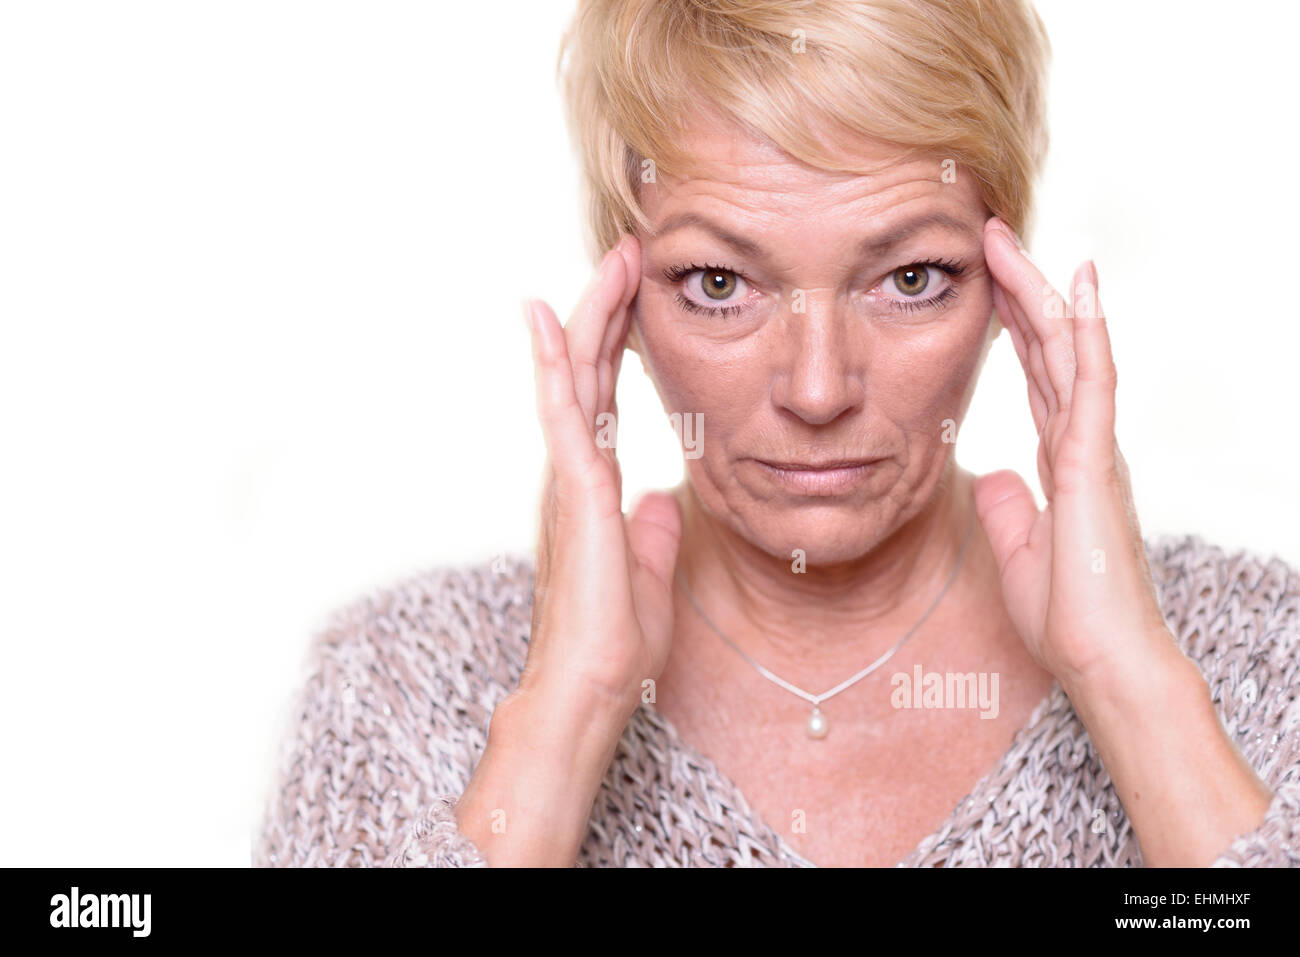 Attractive senior blond woman with a wide-eyed expression and her glasses on her head indicating headache or migraine - Stock Image